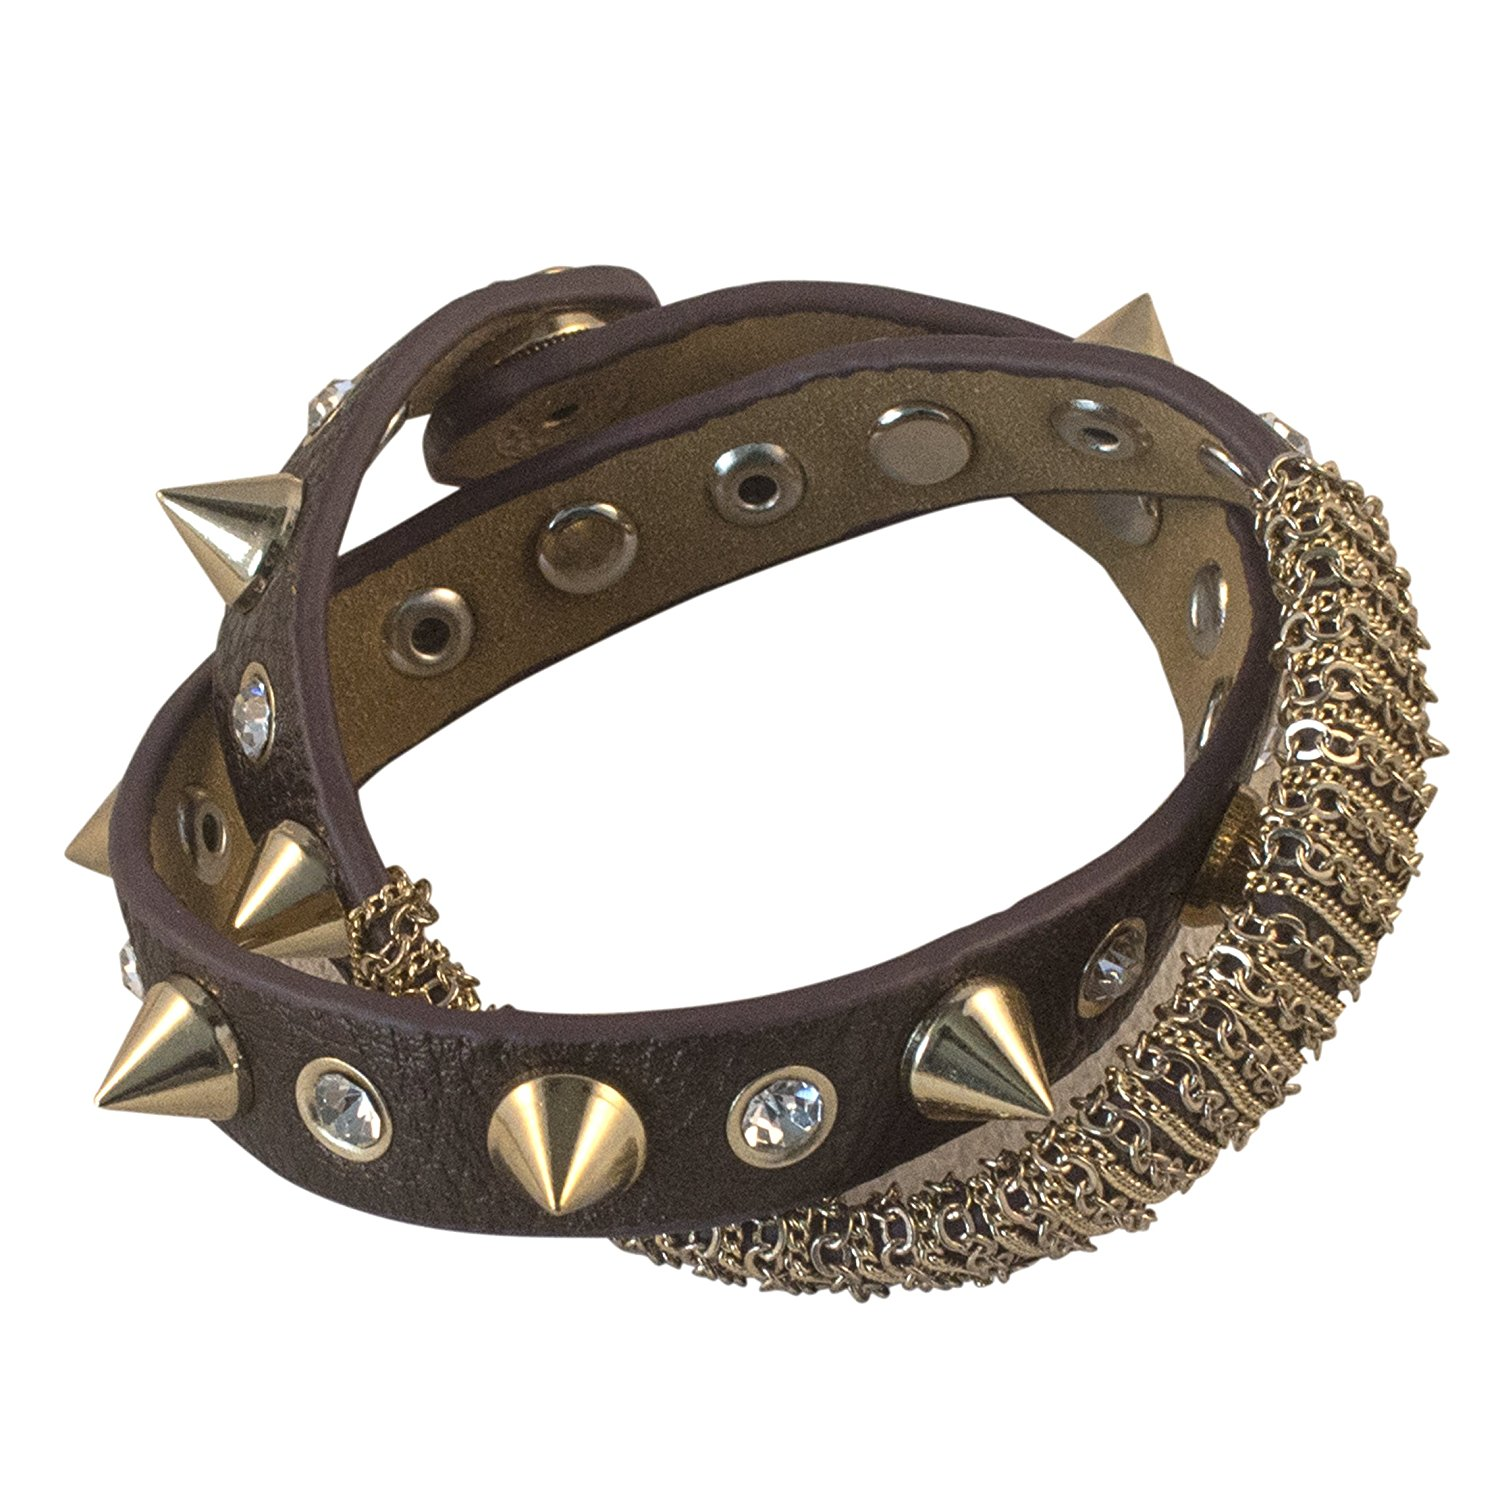 Funky Twisted Womens Leather Spike Bracelet Intricate Gold Tone Chain Detail